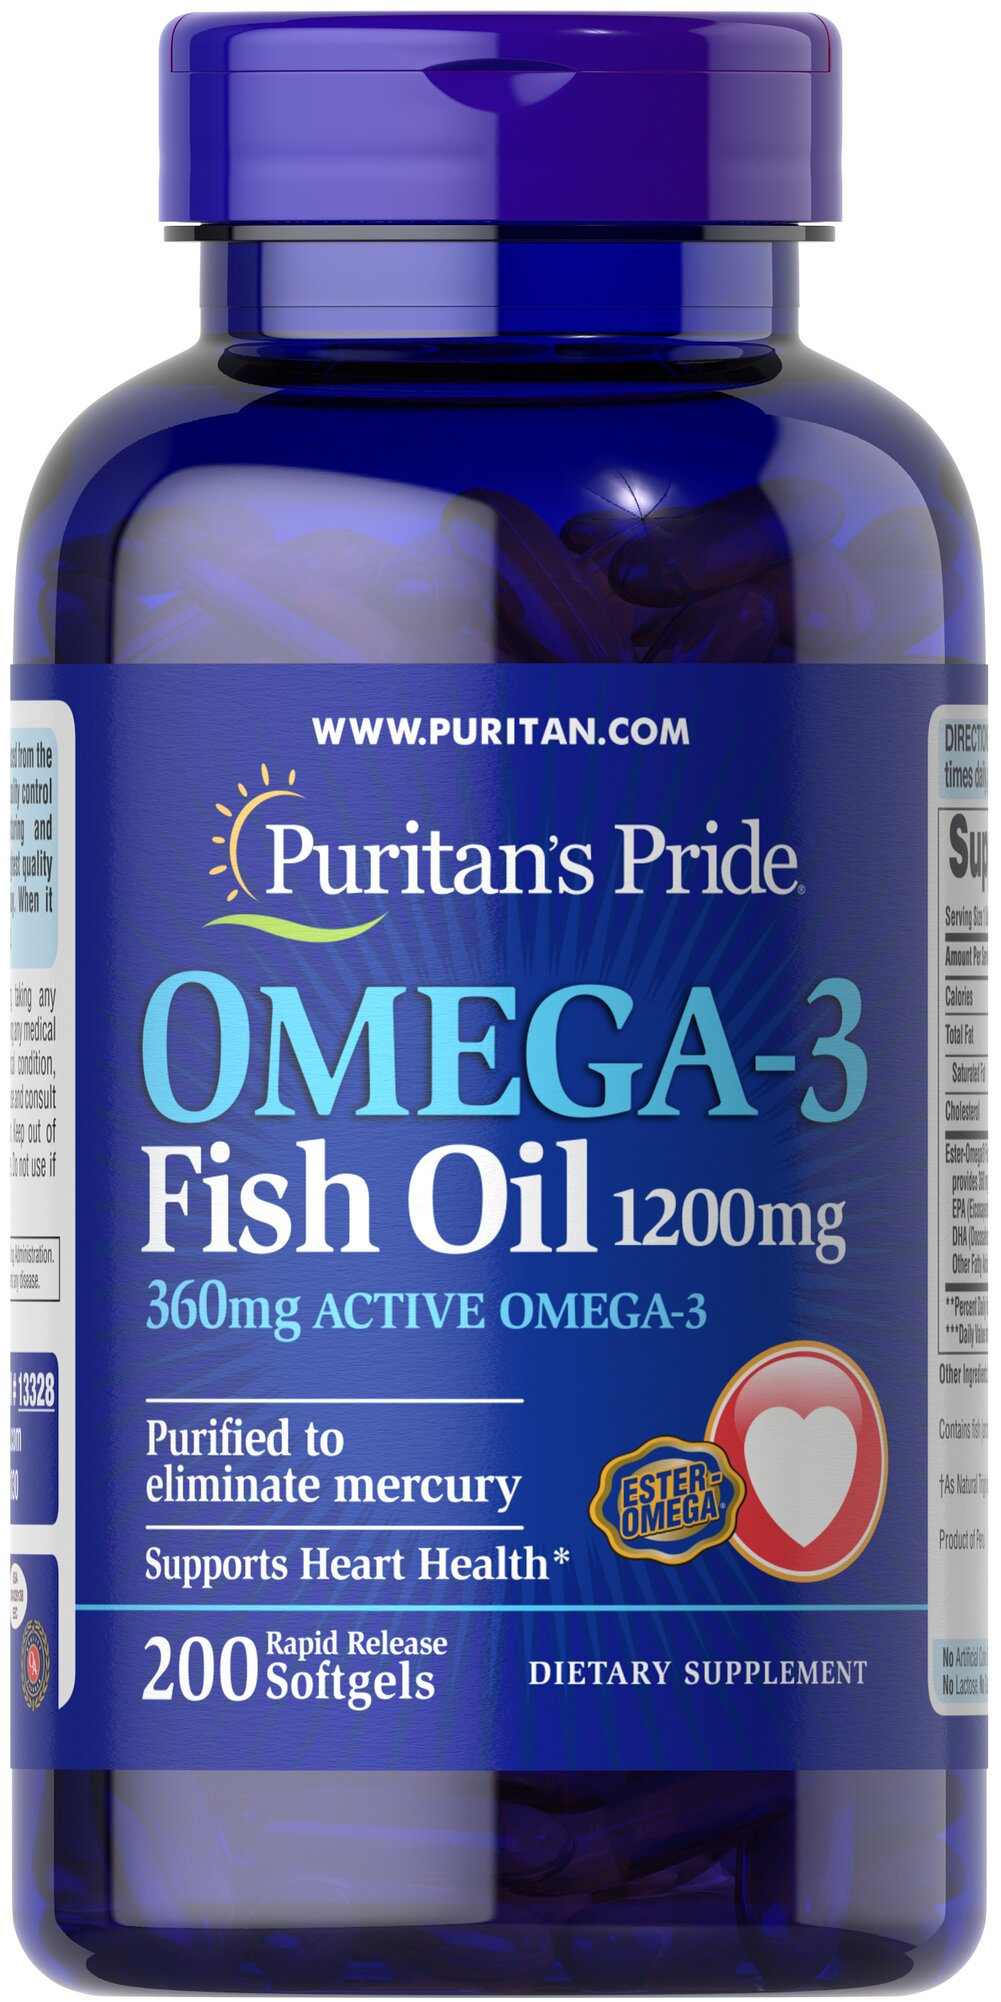 Omega-3 Fish Oil 1200 mg (360 mg Active Omega-3) <p>This Ester-Omega® Fish Oil provides 360mg of total omega-3 fatty acids, comprising of EPA, DHA and other fatty acids. EPA and DHA fatty acids support heart health.** Purified to eliminate mercury. Rapid release softgels.</p> 200 Softgels 1200 mg $26.99